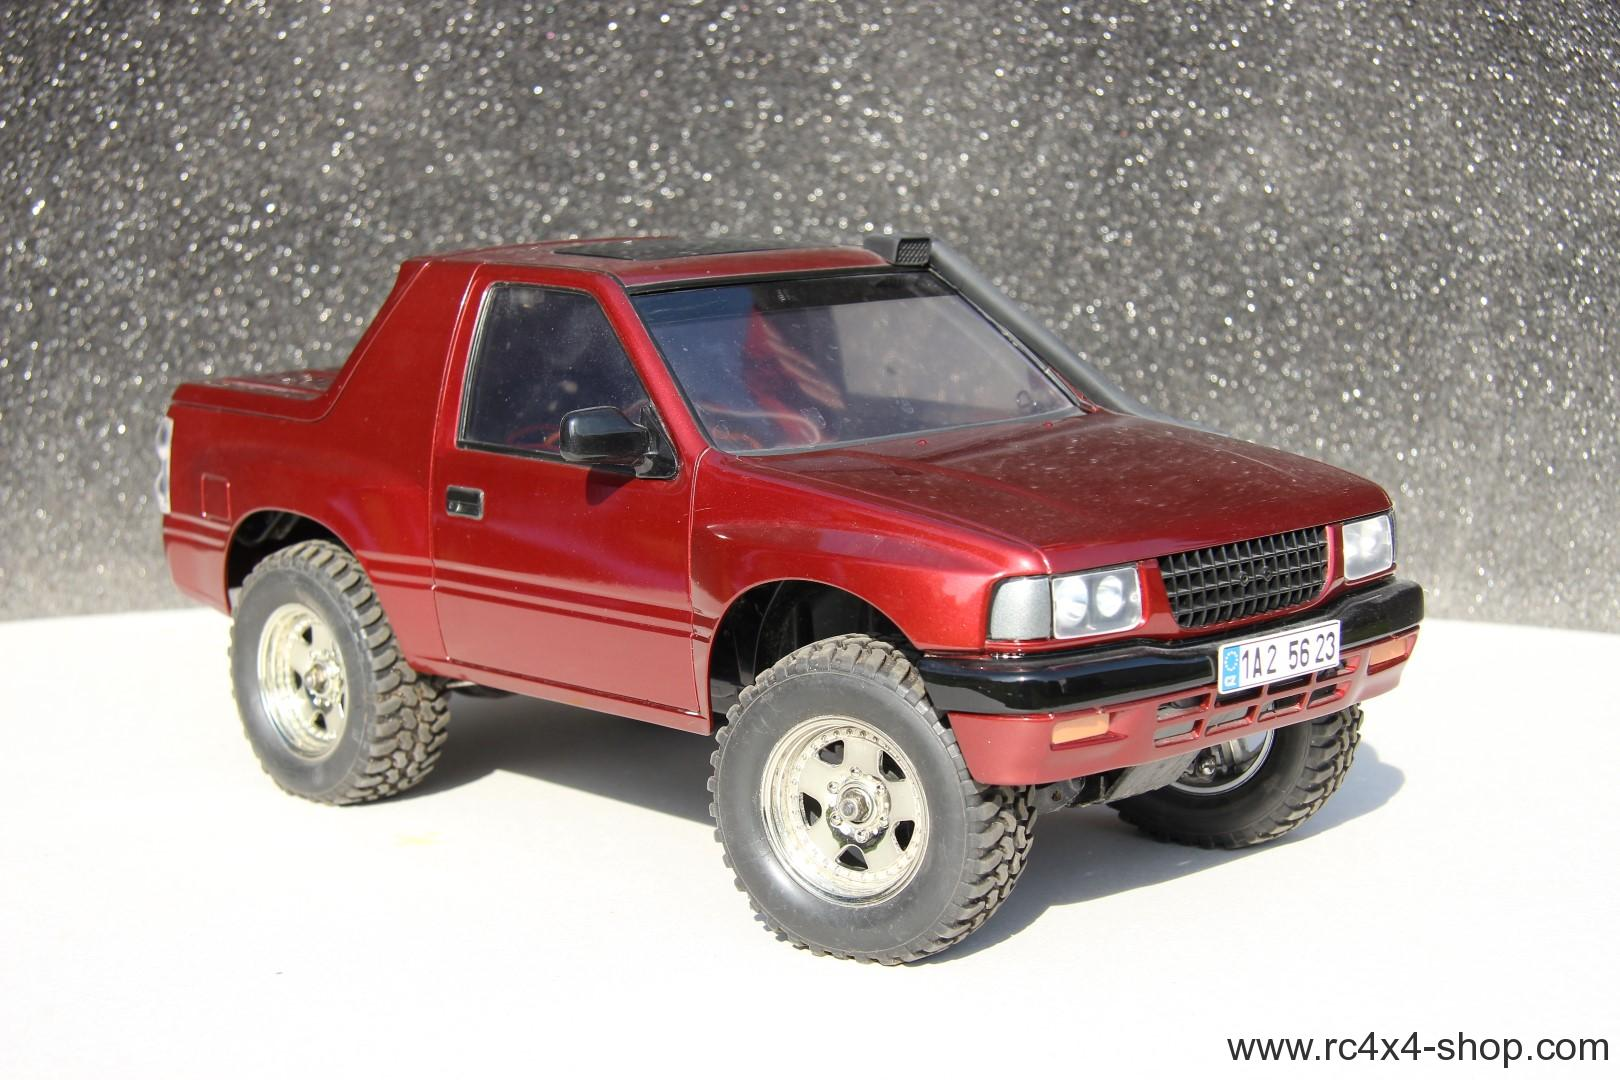 rc car model shop with Cc 01 Isuzu Amigo D65 on 121069006389 moreover Hawker Typhoon Detail Photos also Uebersicht Von Stecker Buchsen Im Modellbau also Rat Rod Model 334710464 likewise Reely Dune Fighter Brushed 110 RC Model Car Electric Buggy 4WD RtR 24 GHz.